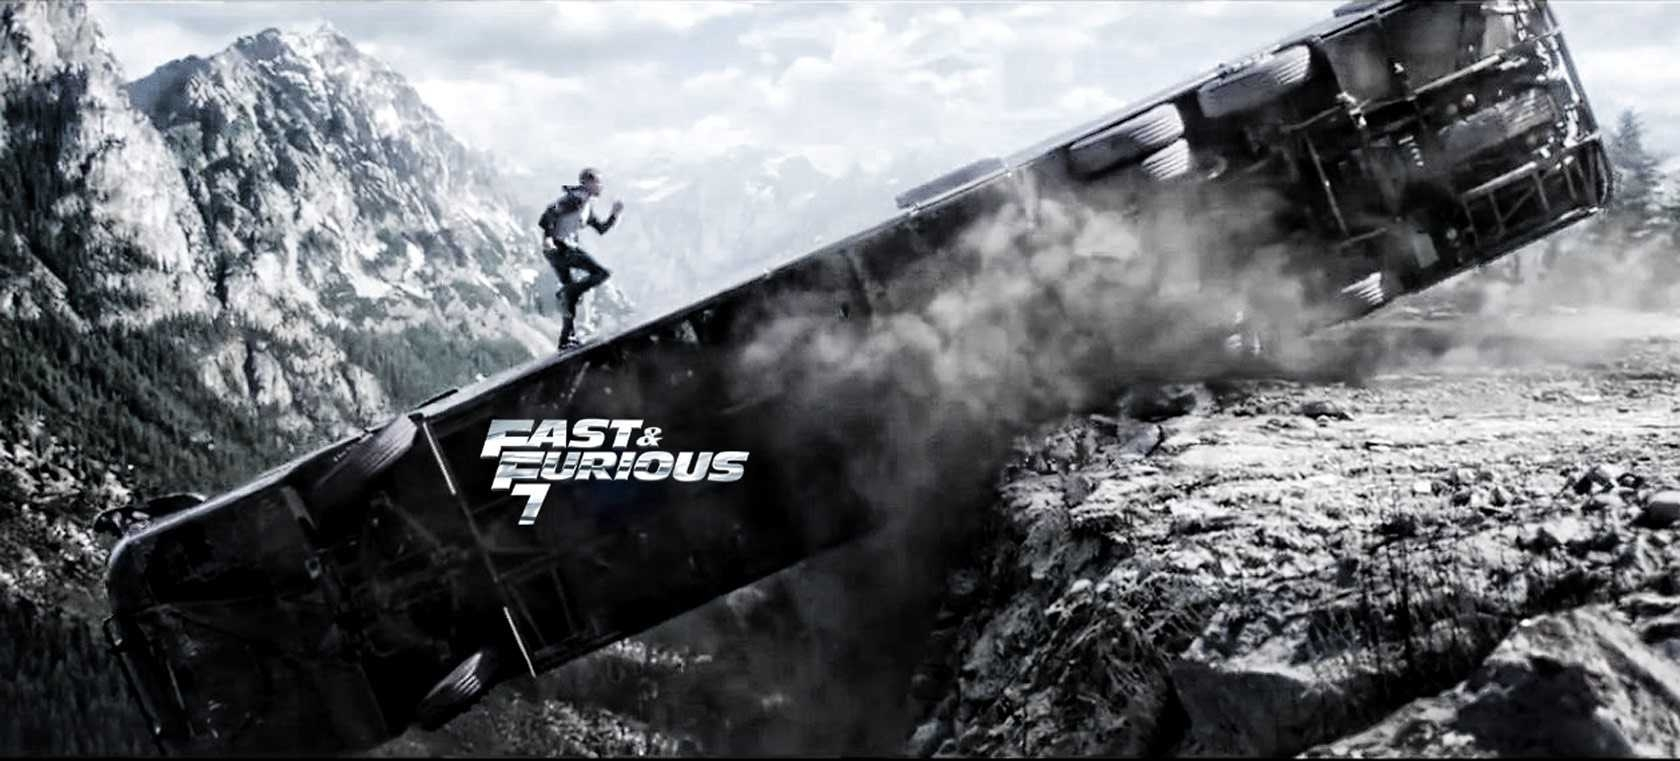 fast and furios hd desktop furious 7 wallpaper for mobile phones